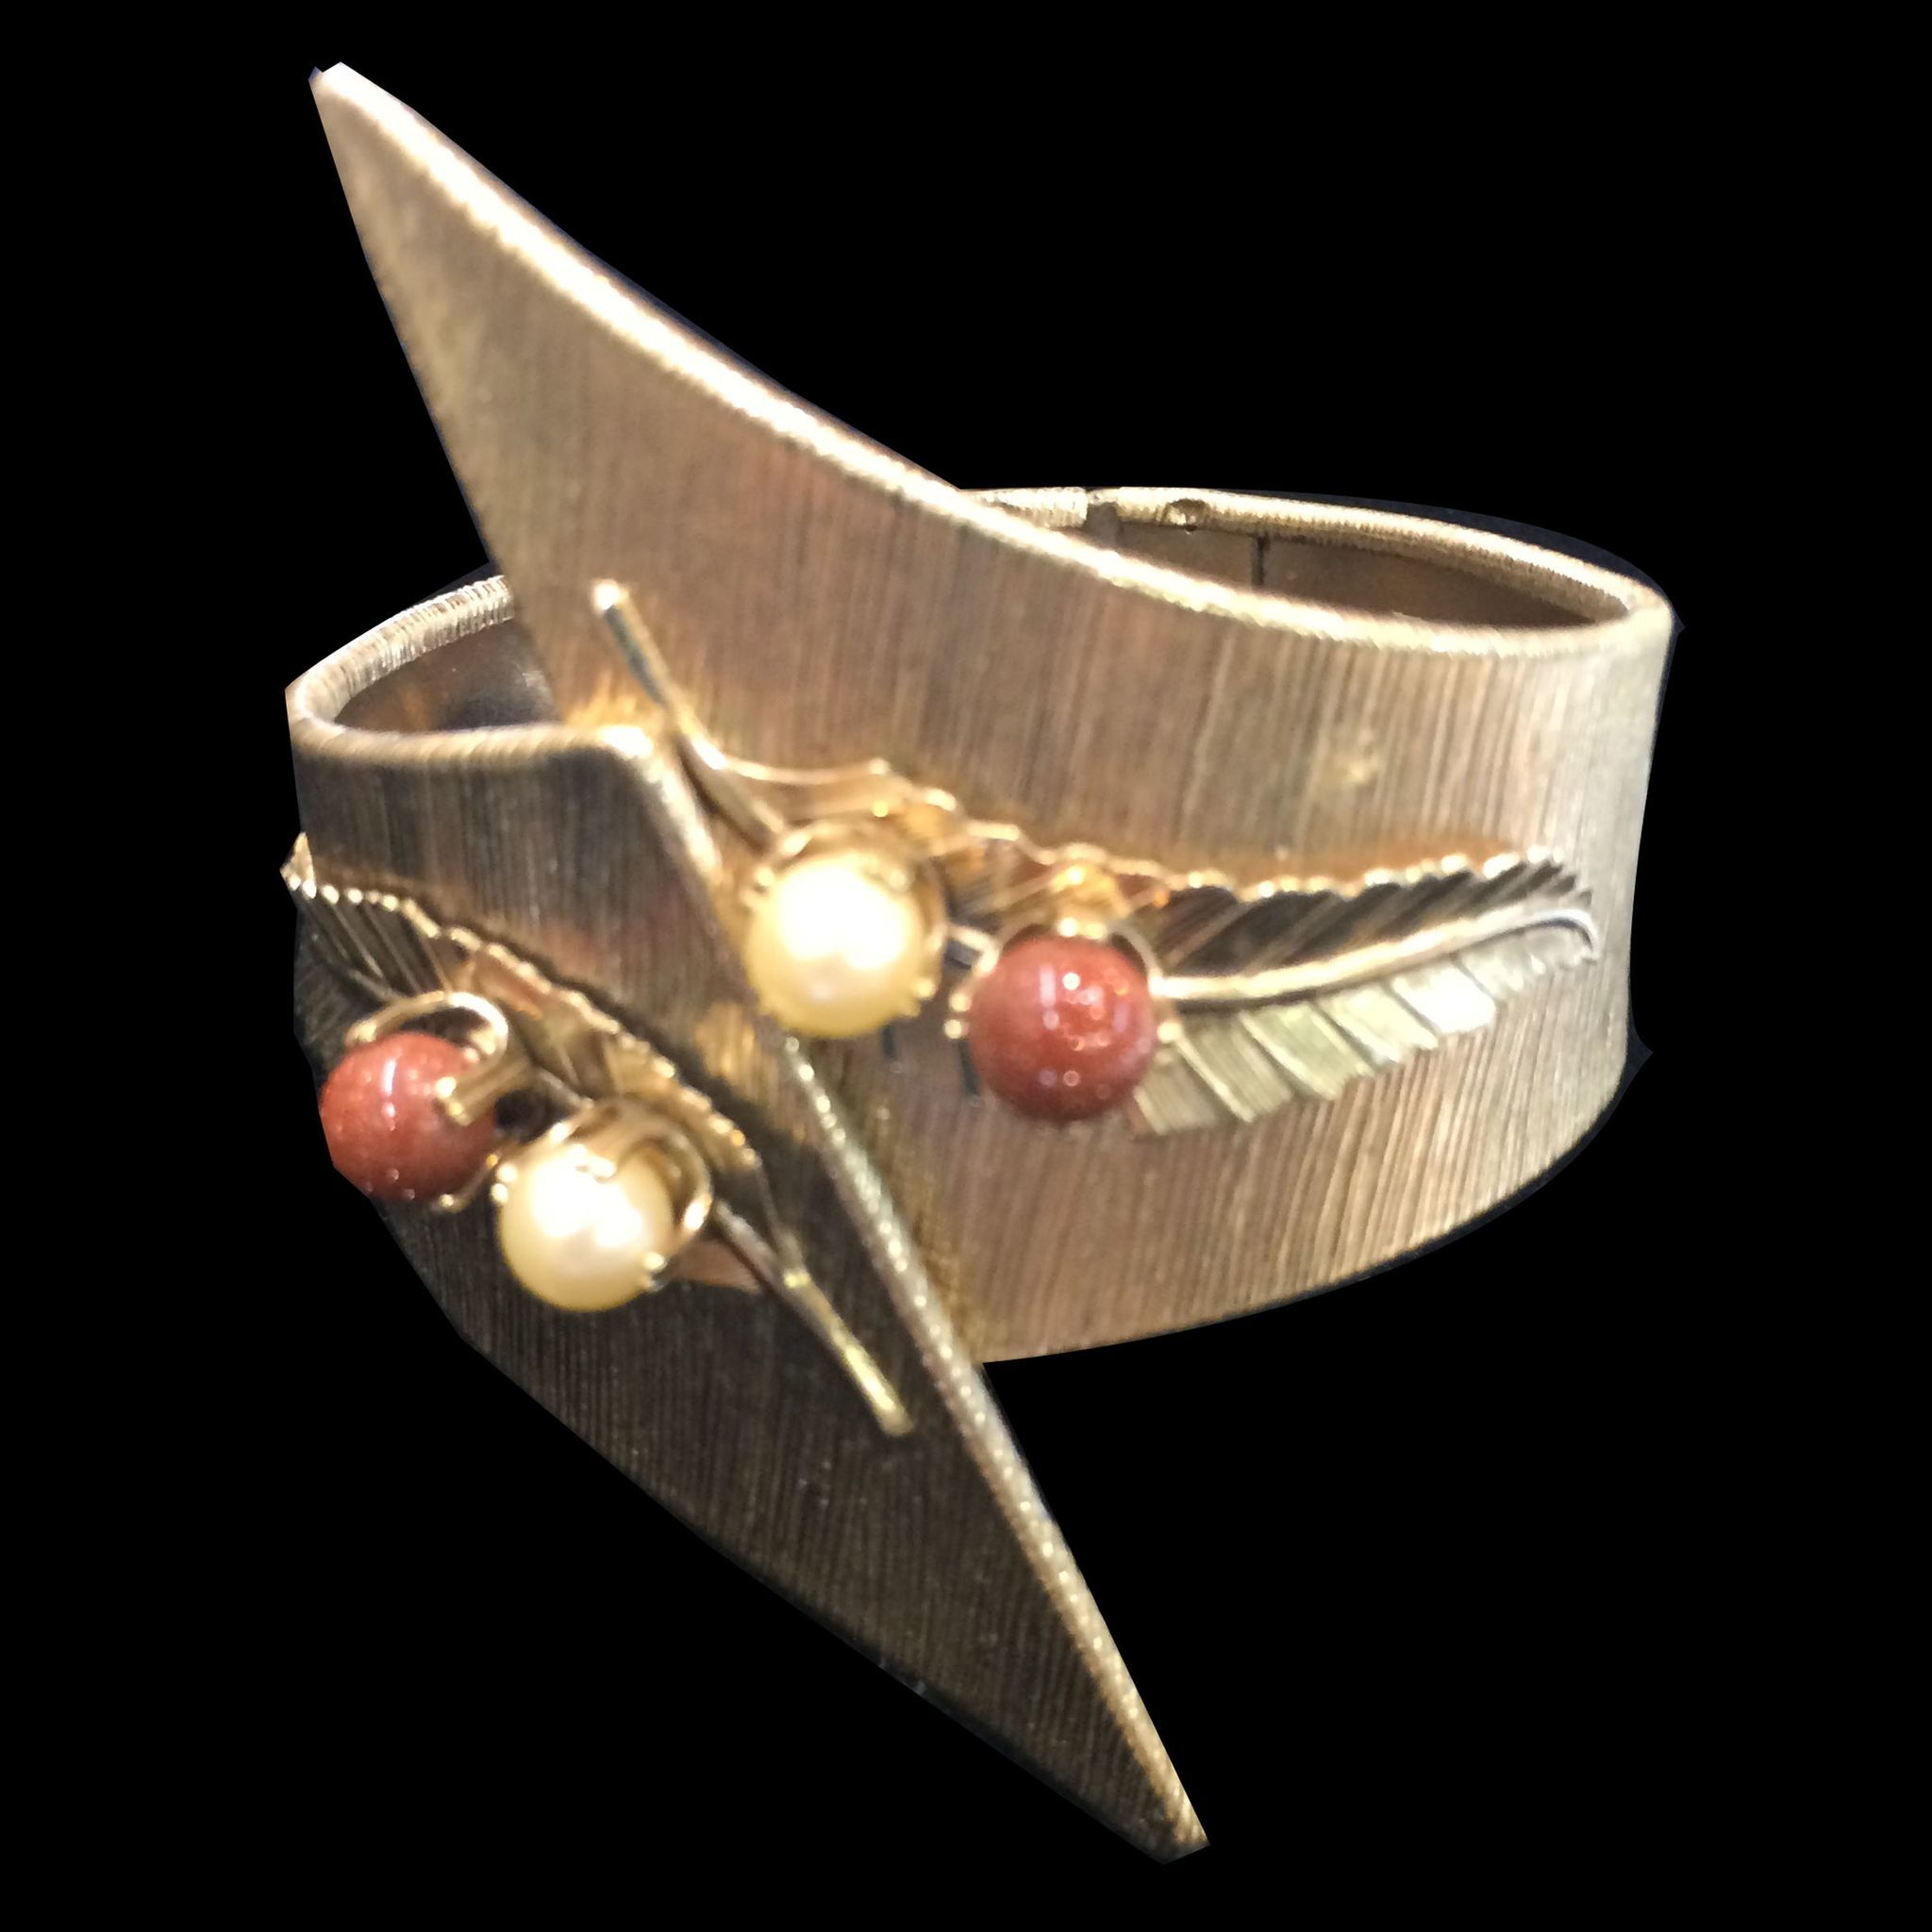 Textured Florentine Gold Tone Metal Bypass Cuff Bracelet with Imitation Pearl and Copper Fleck Cabochon Accents